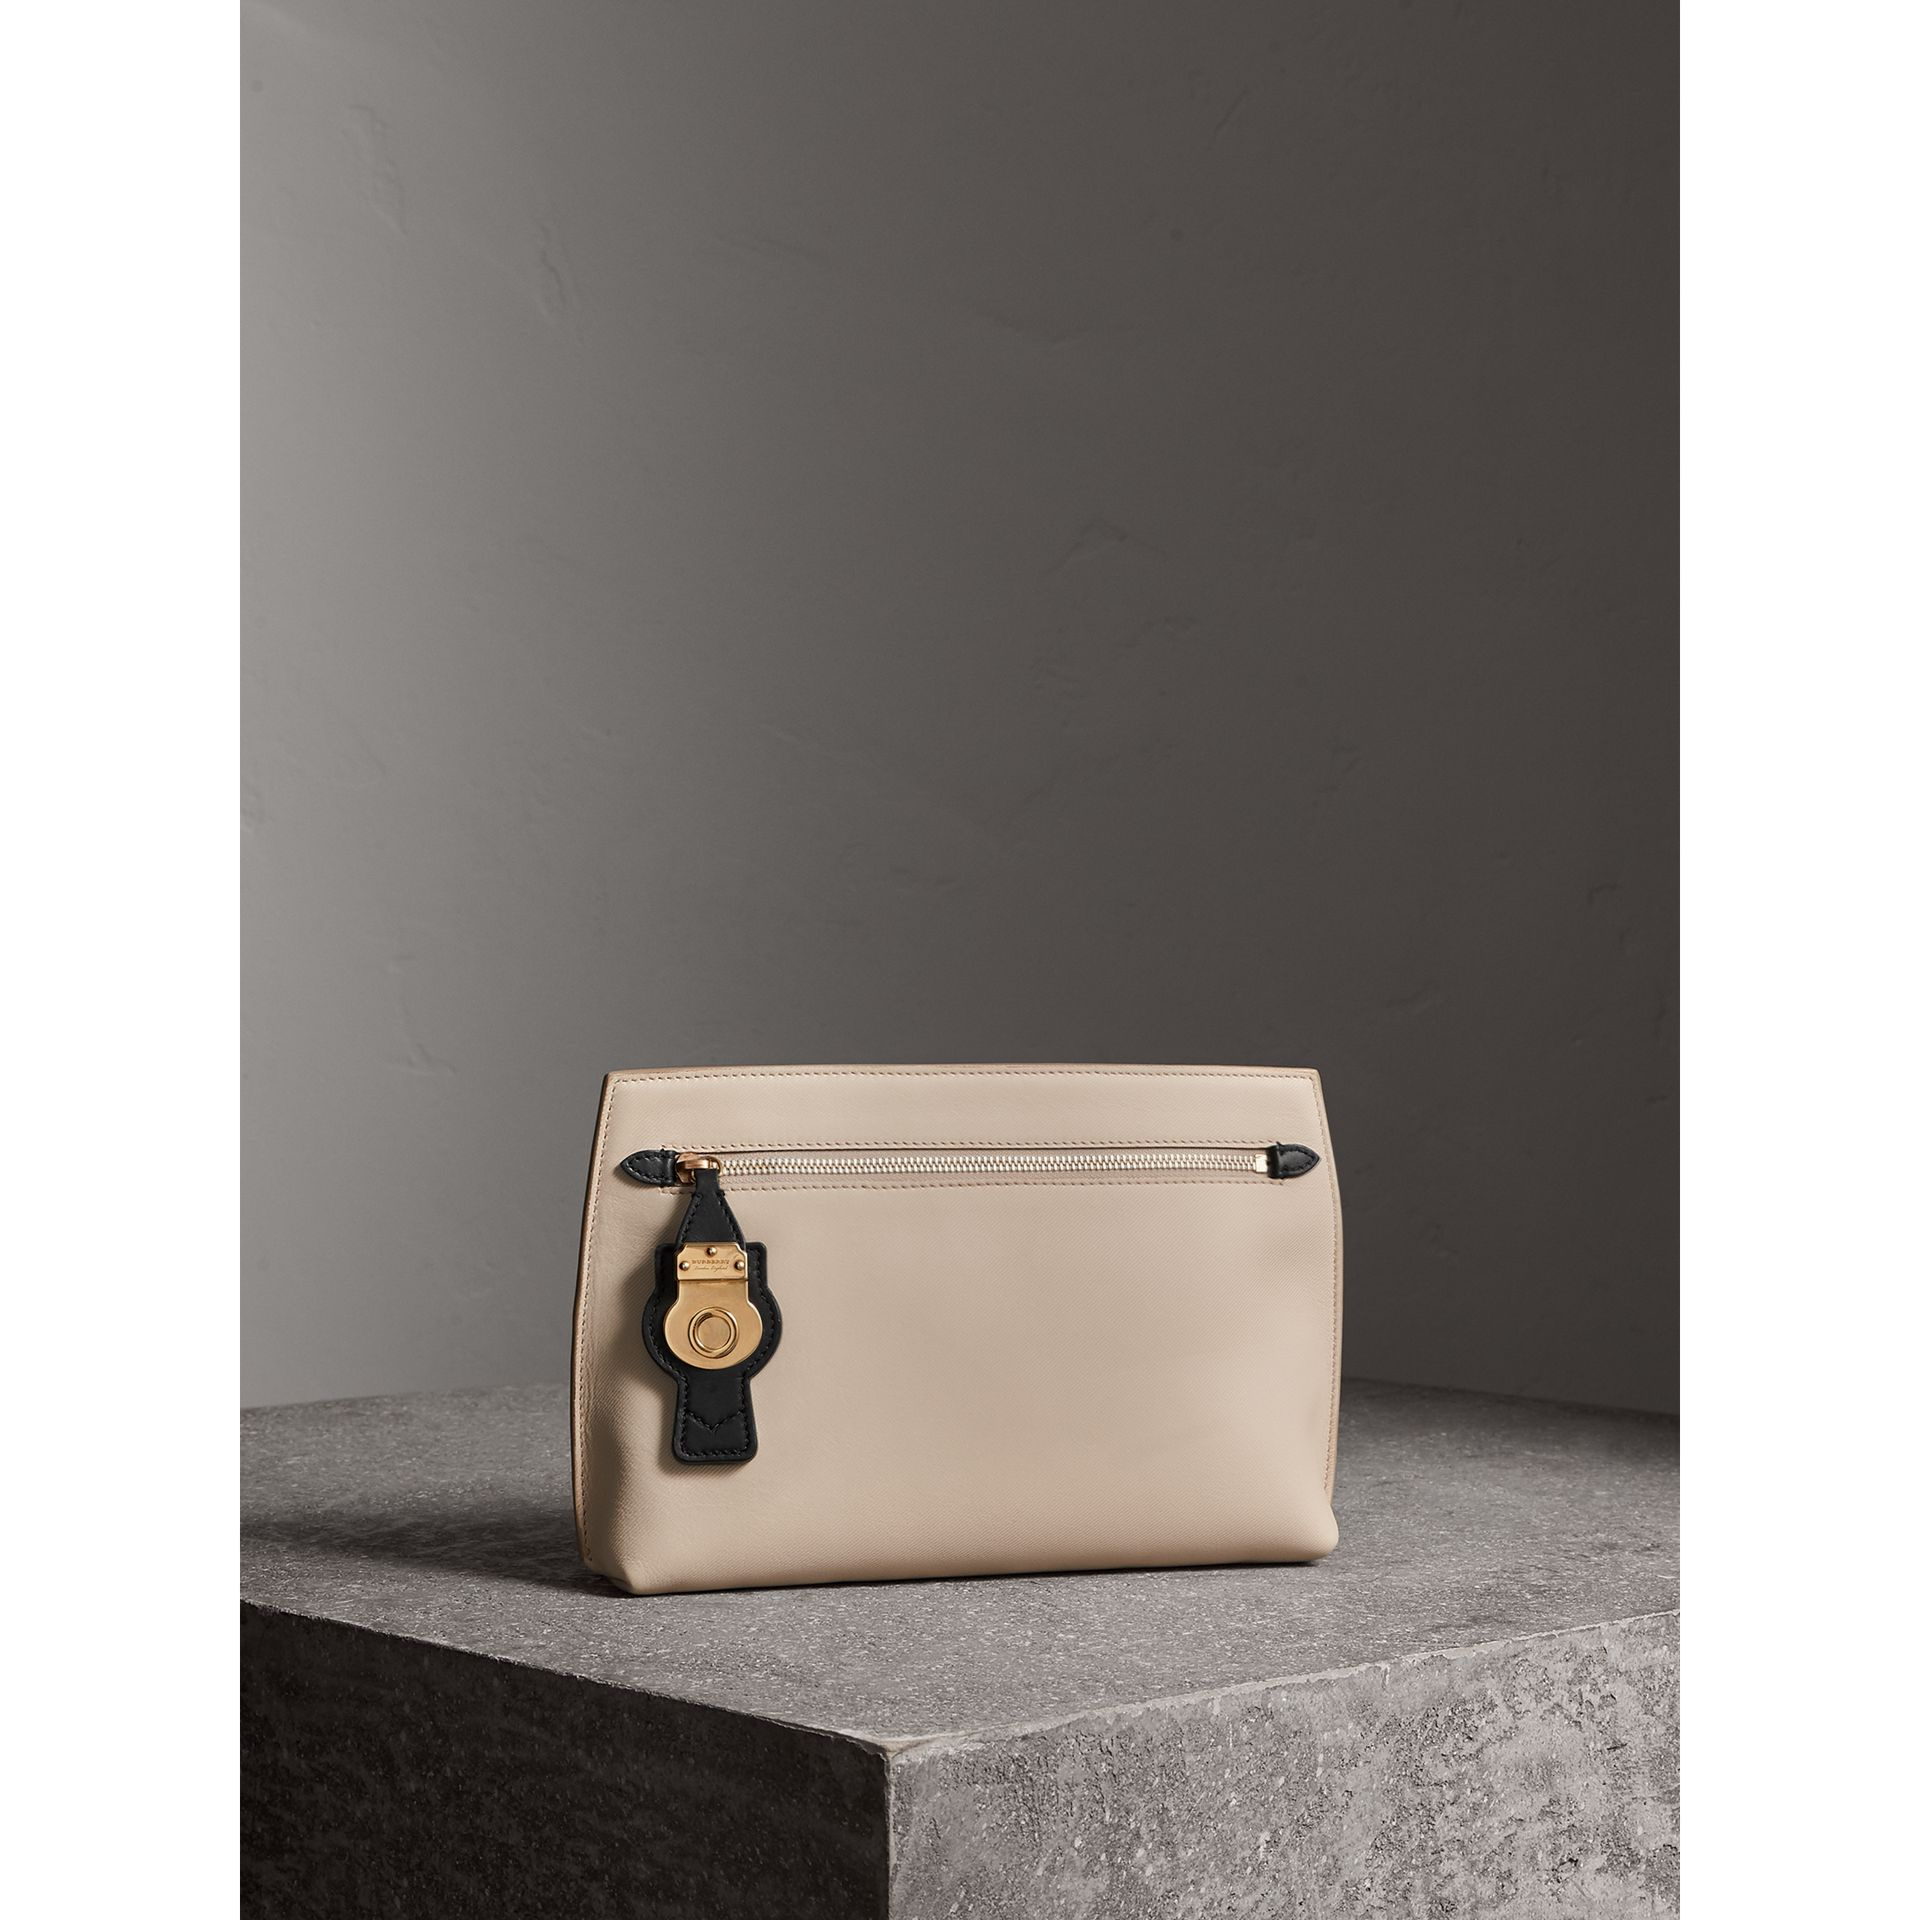 Two-tone Trench Leather Wristlet Pouch in Limestone/black - Women | Burberry Singapore - gallery image 6